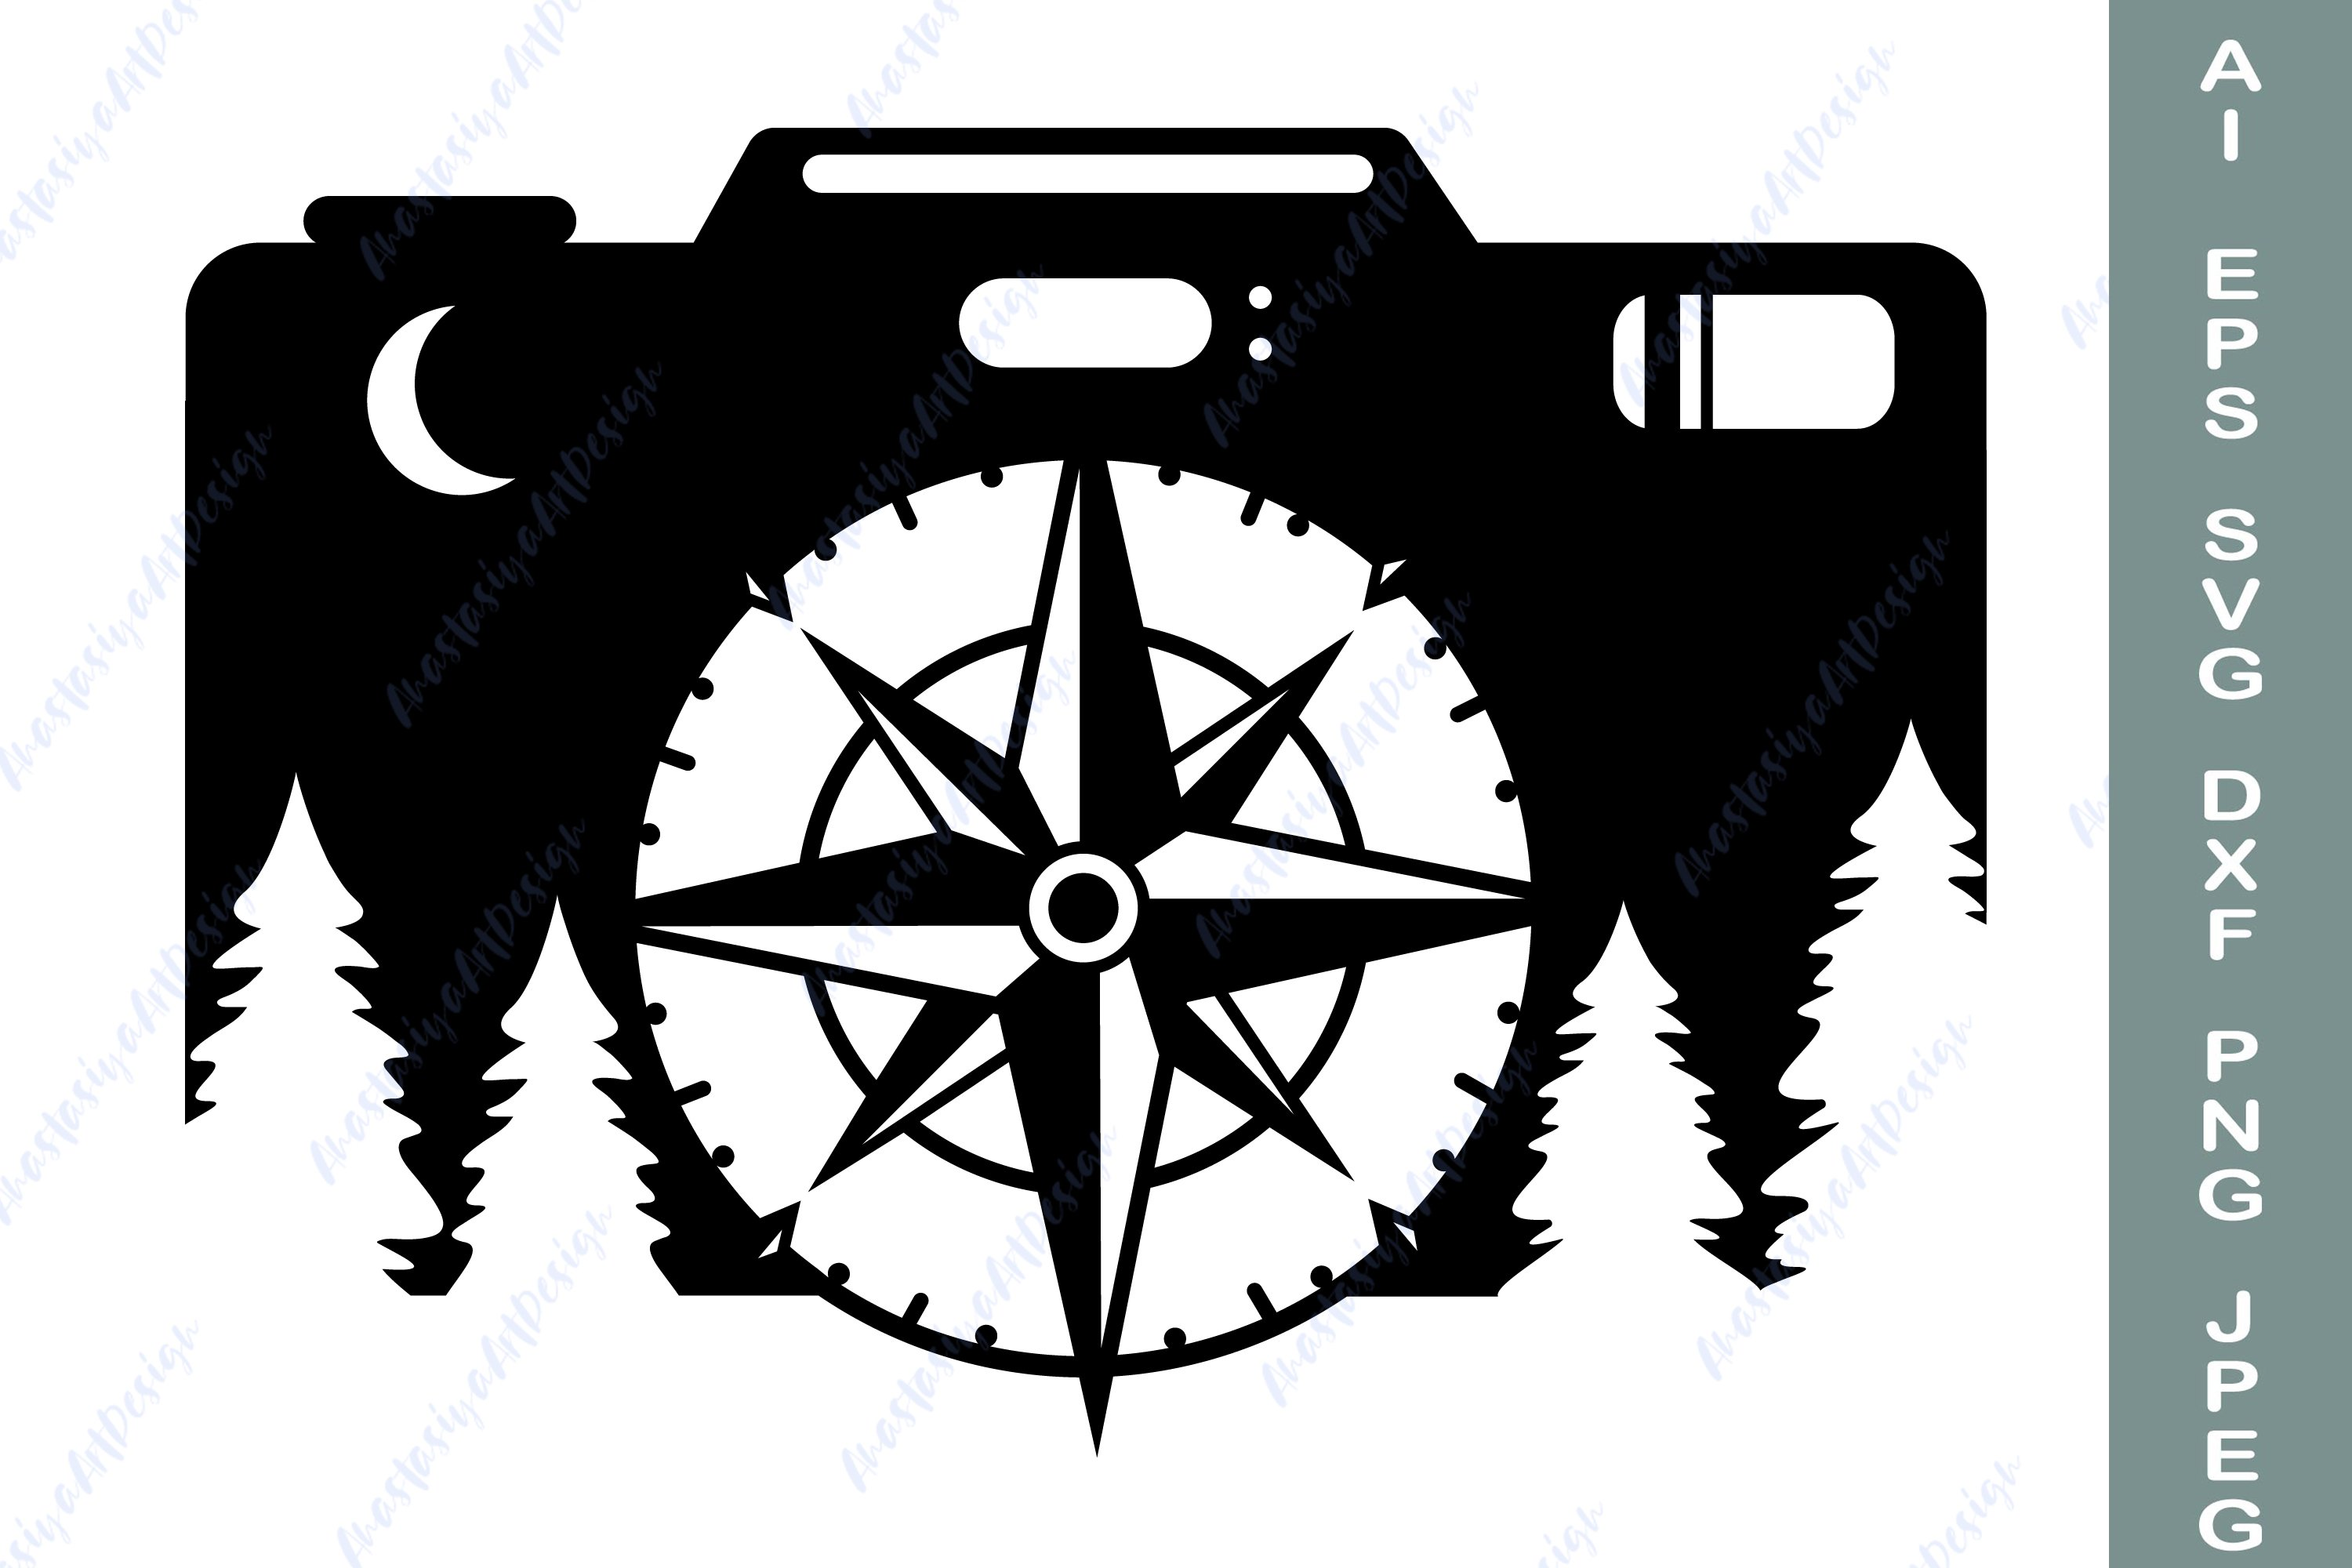 Camera and compass svg, Camping shirt svg, Travel dxf example image 2